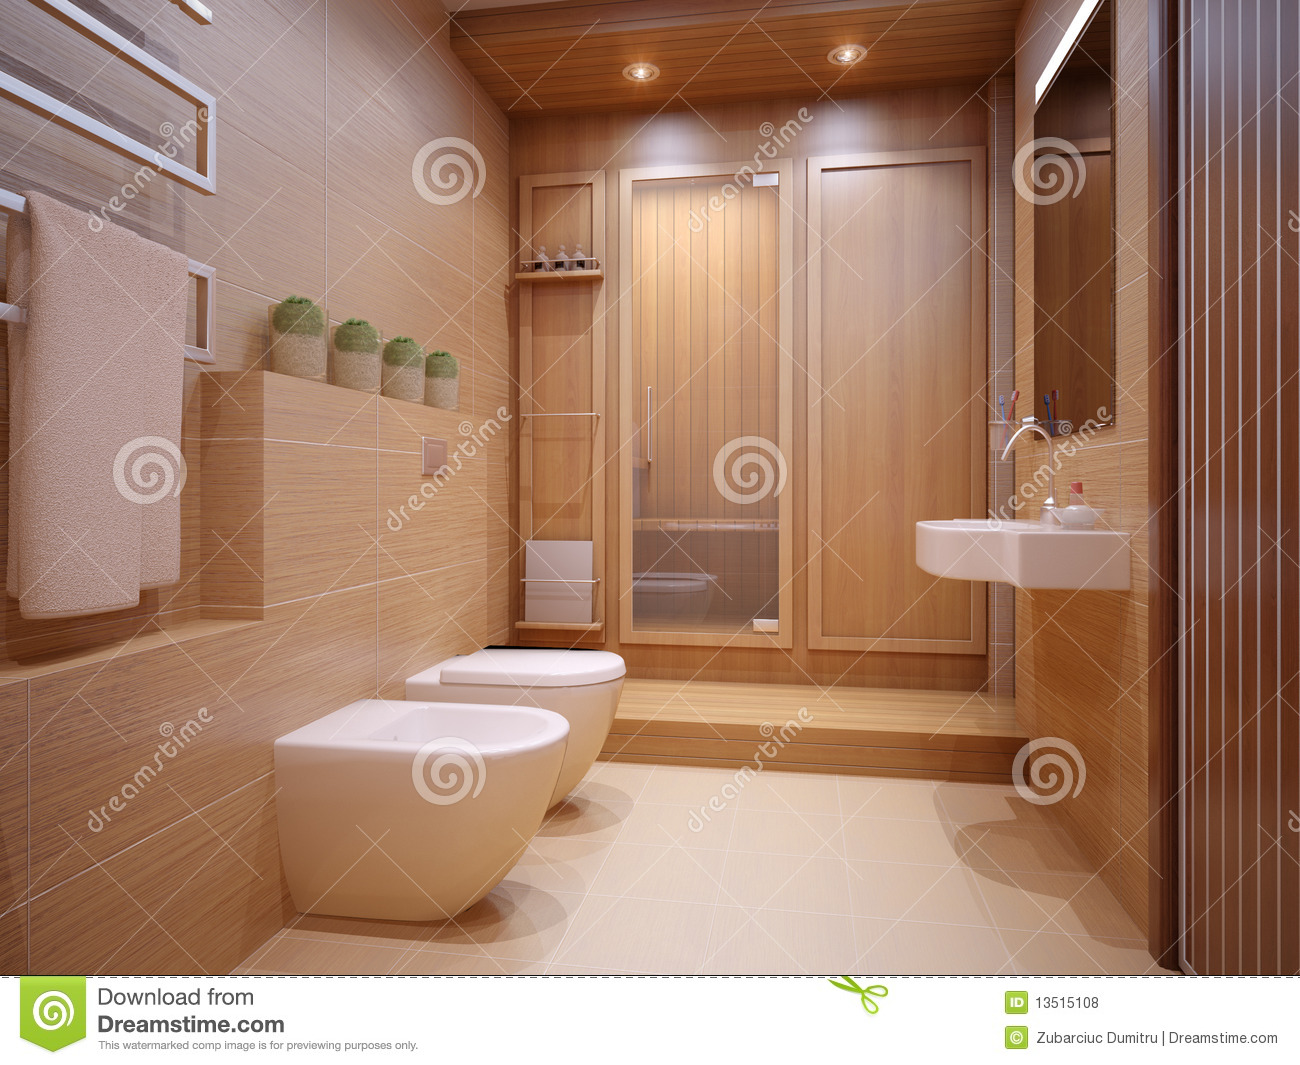 Bathroom ideas for design nice bathrooms bathtub designs for Pics of nice bathrooms